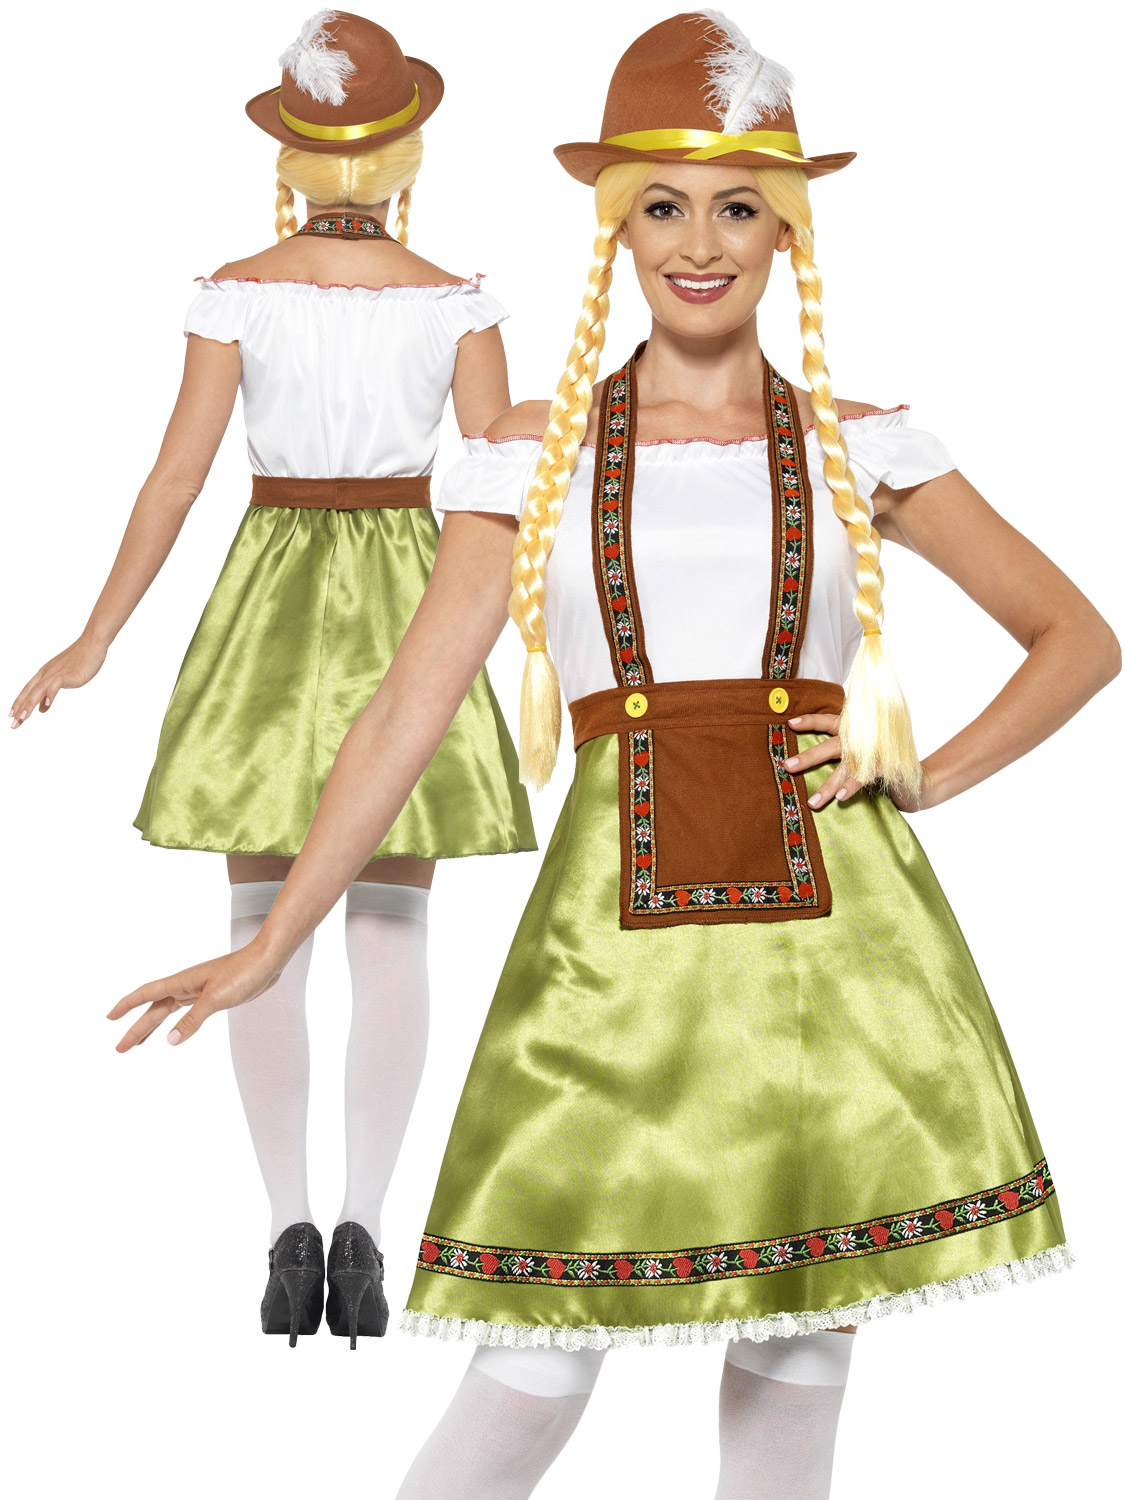 ladies bavarian maid costume adults oktoberfest fancy dress beer festival outfit ebay. Black Bedroom Furniture Sets. Home Design Ideas